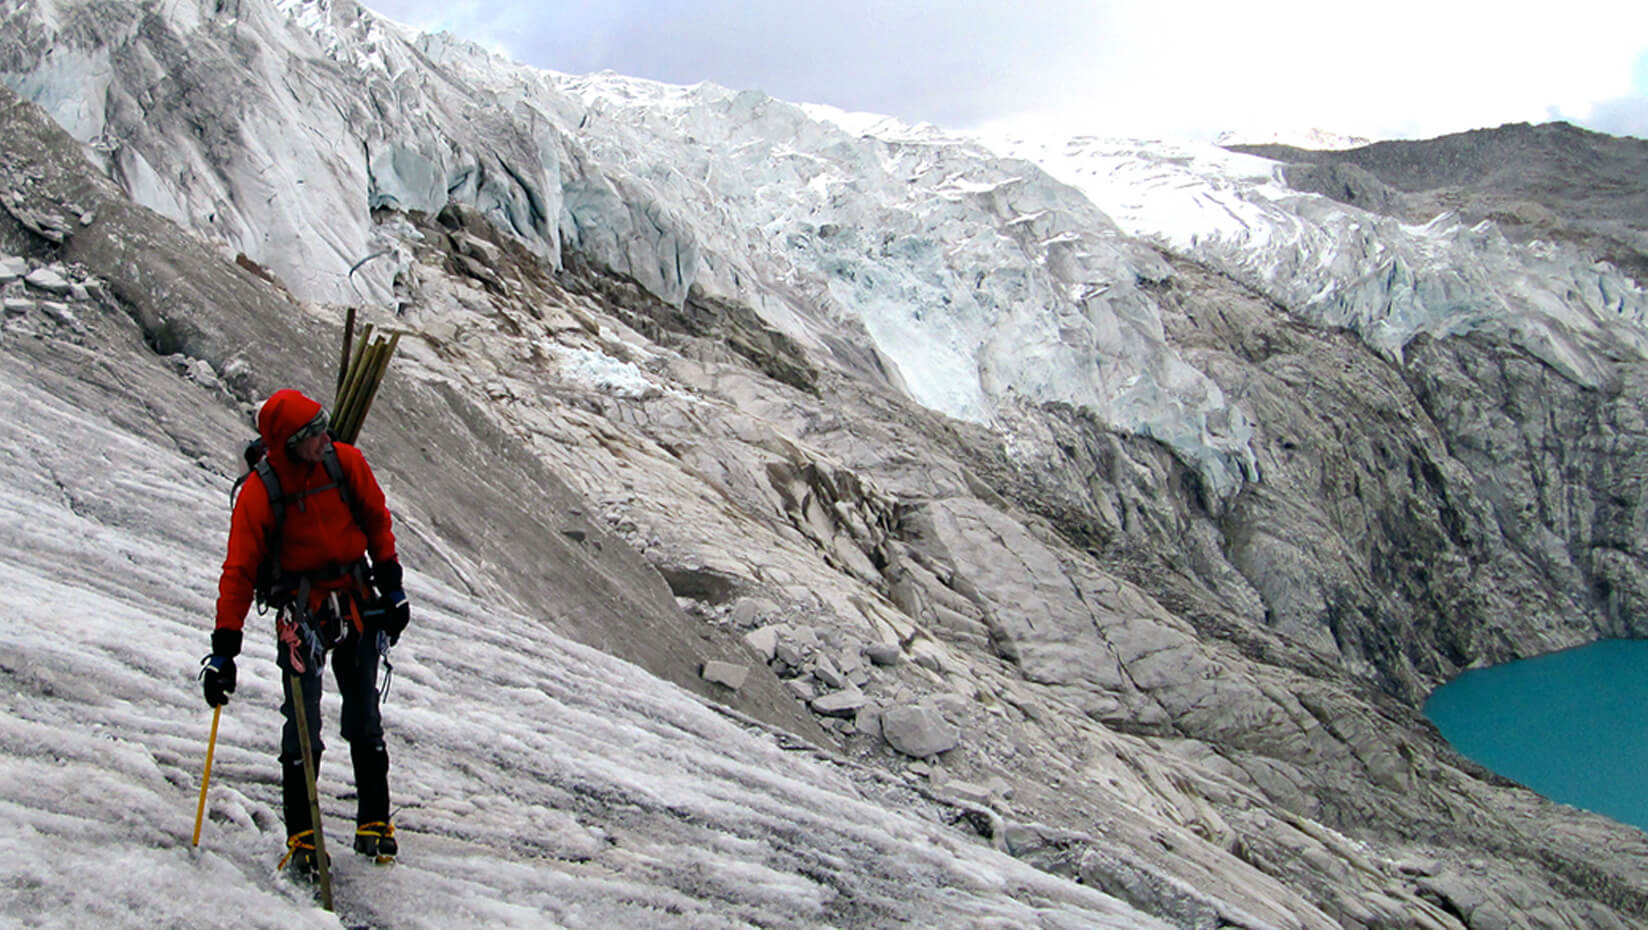 Aaron Putnam on a glacier in Bhutan